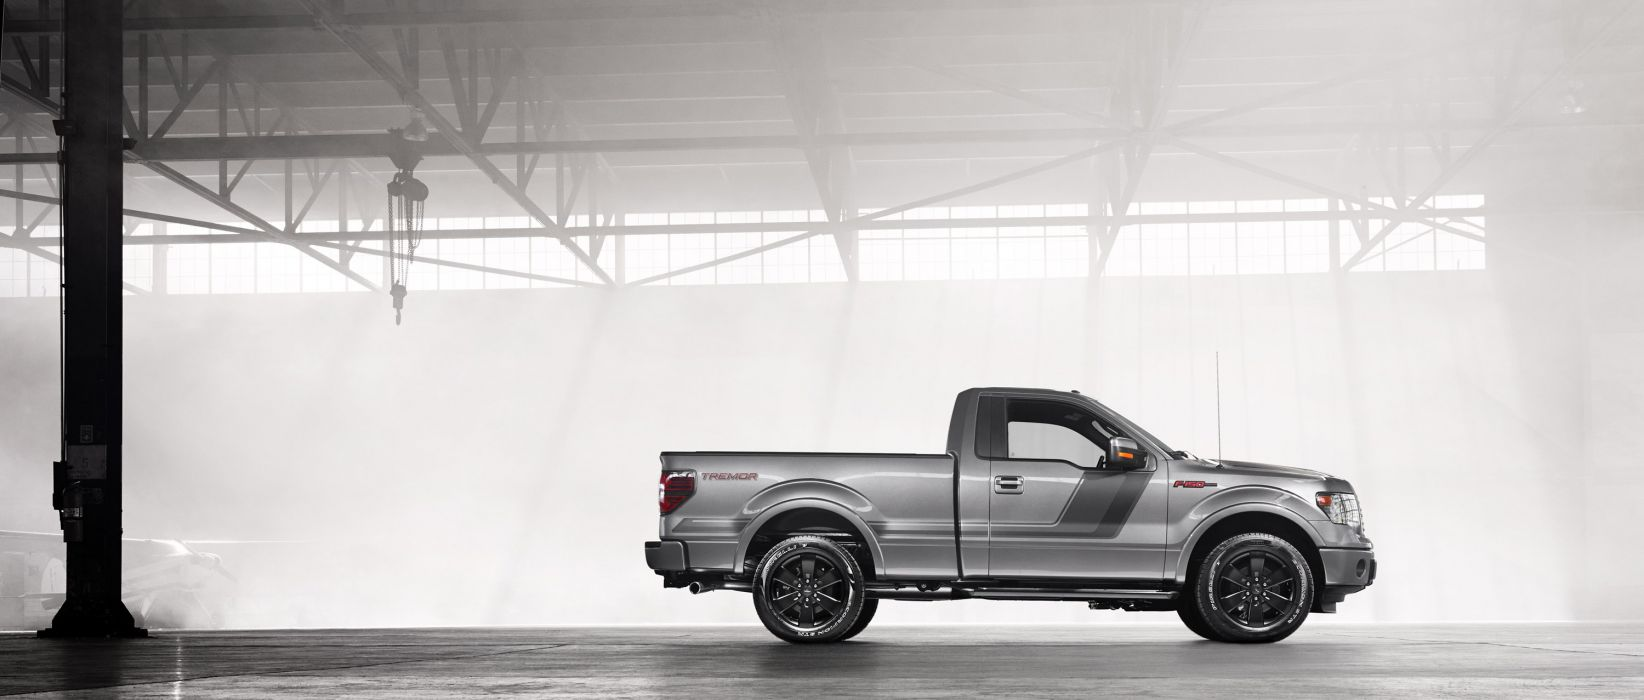 2014 Ford F-150 Tremor muscle truck multi dual wallpaper